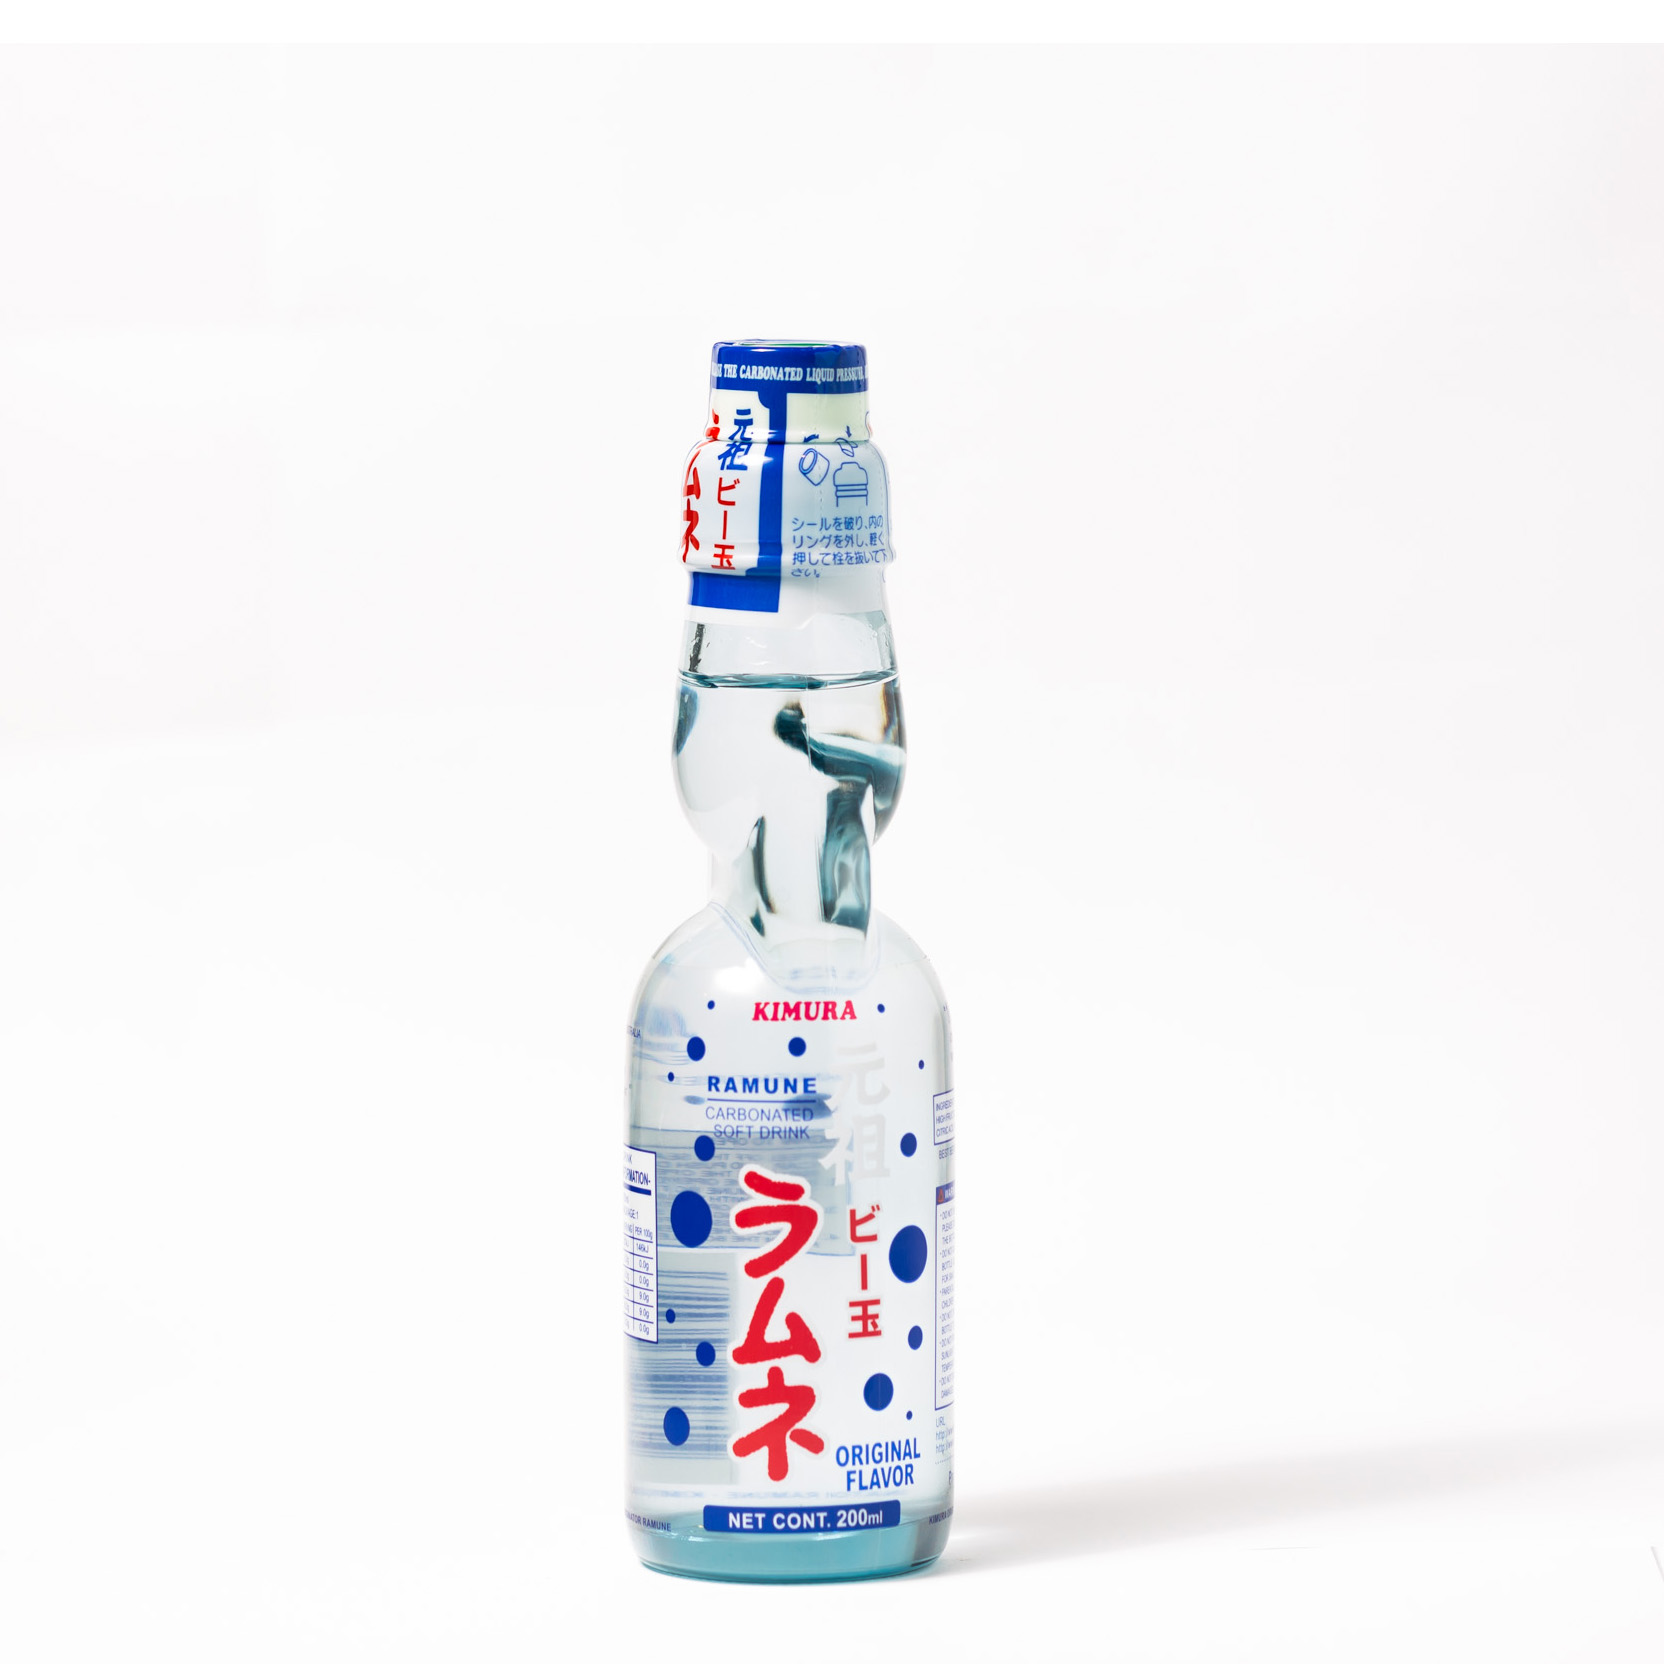 Ramune Japanese Lemonade